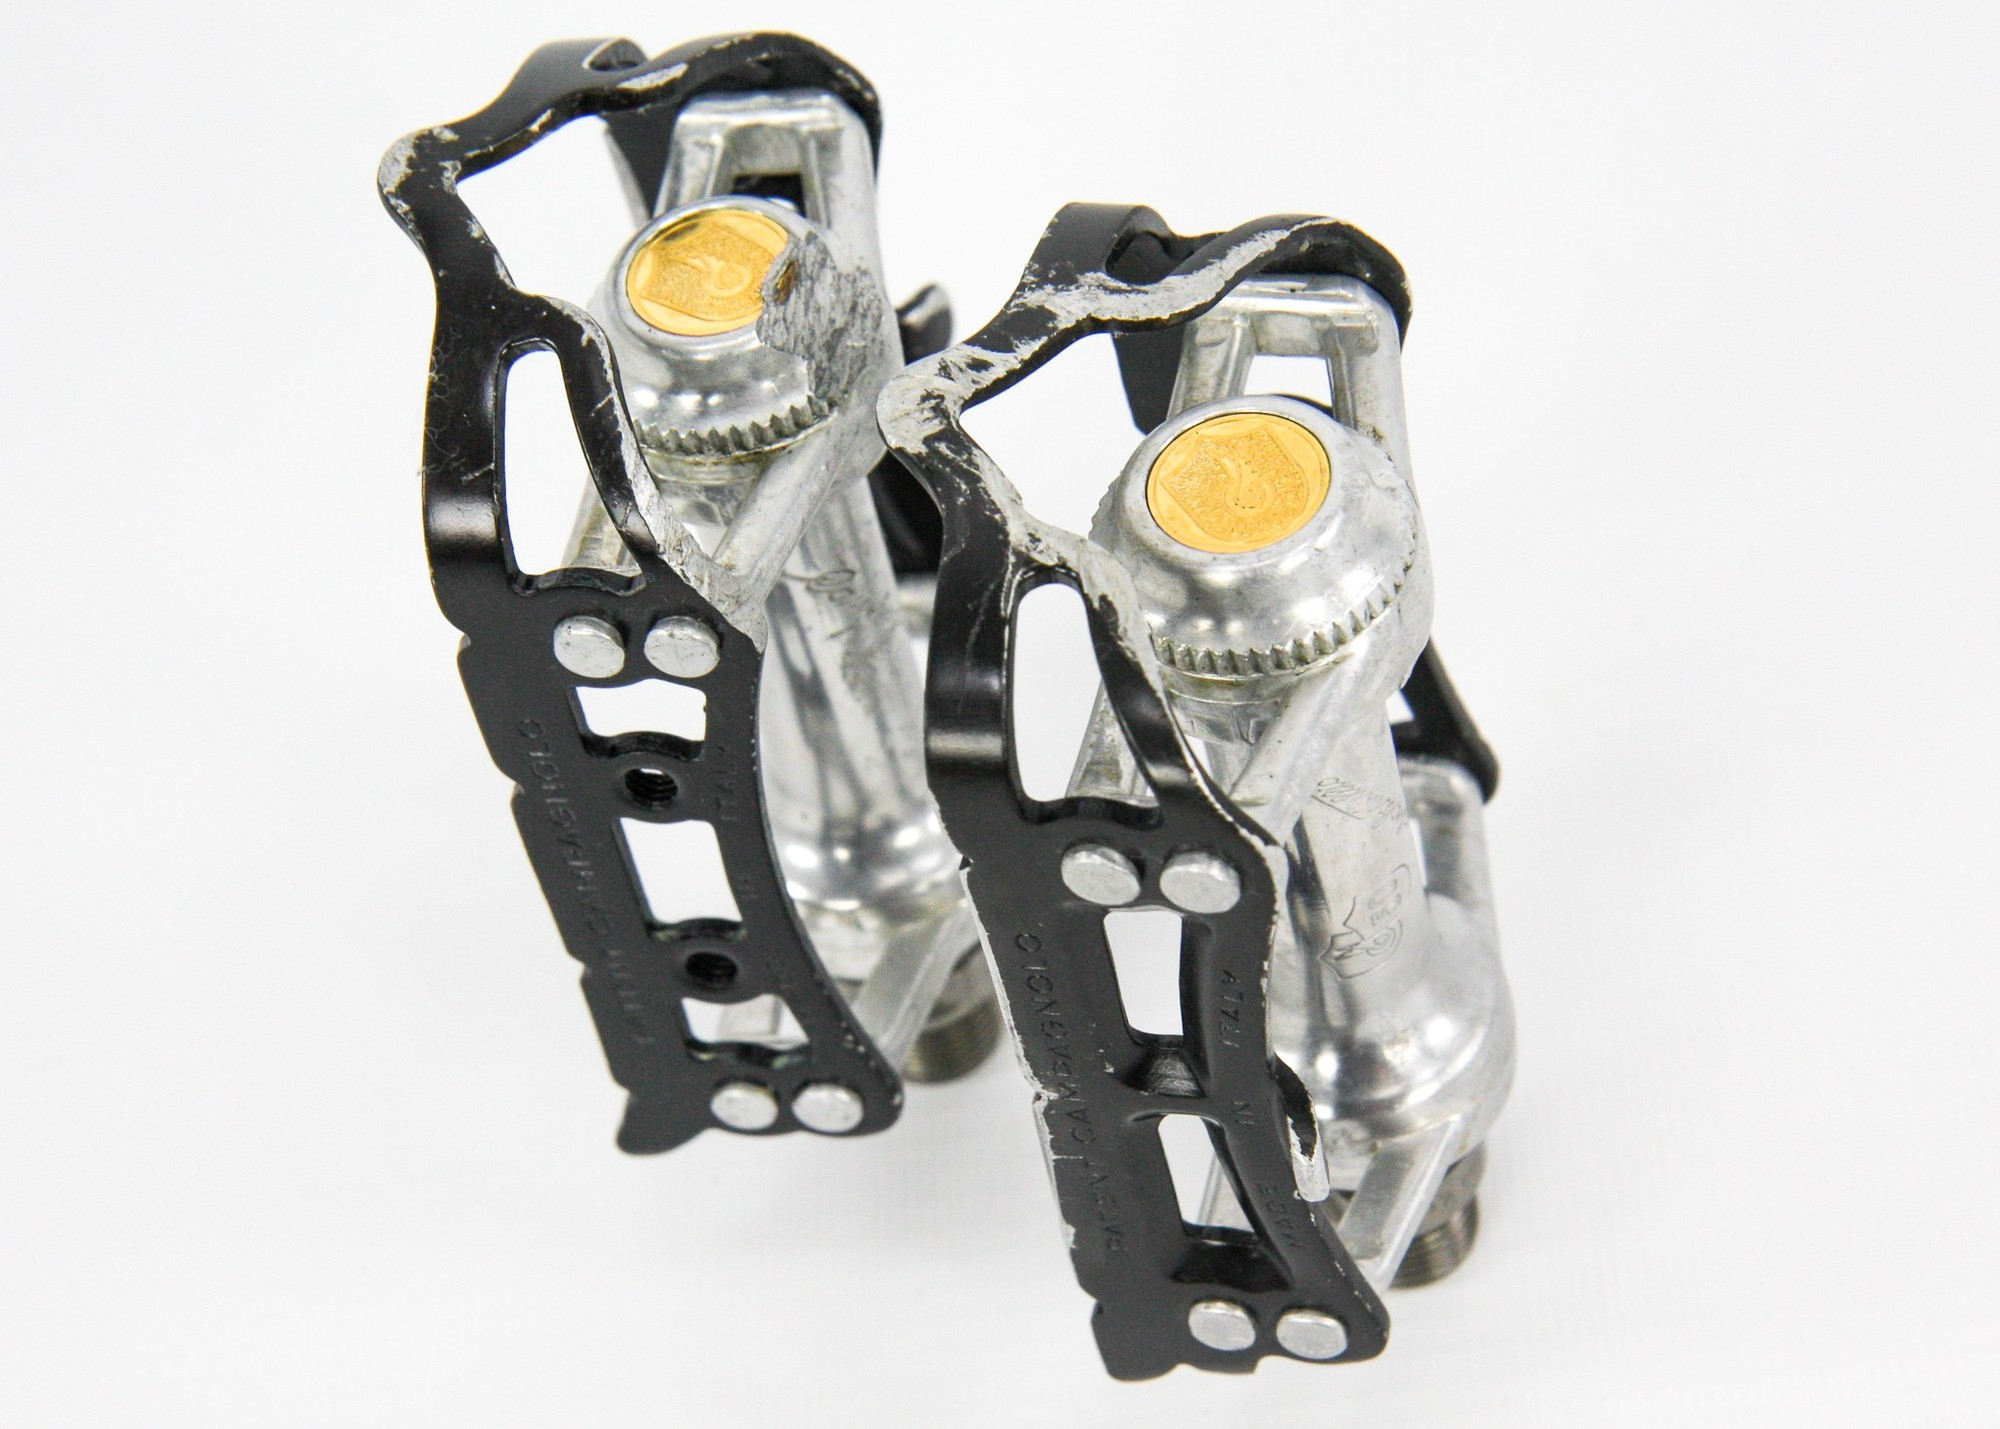 Campagnolo-50th-Anniversary-pedals-3.jpg